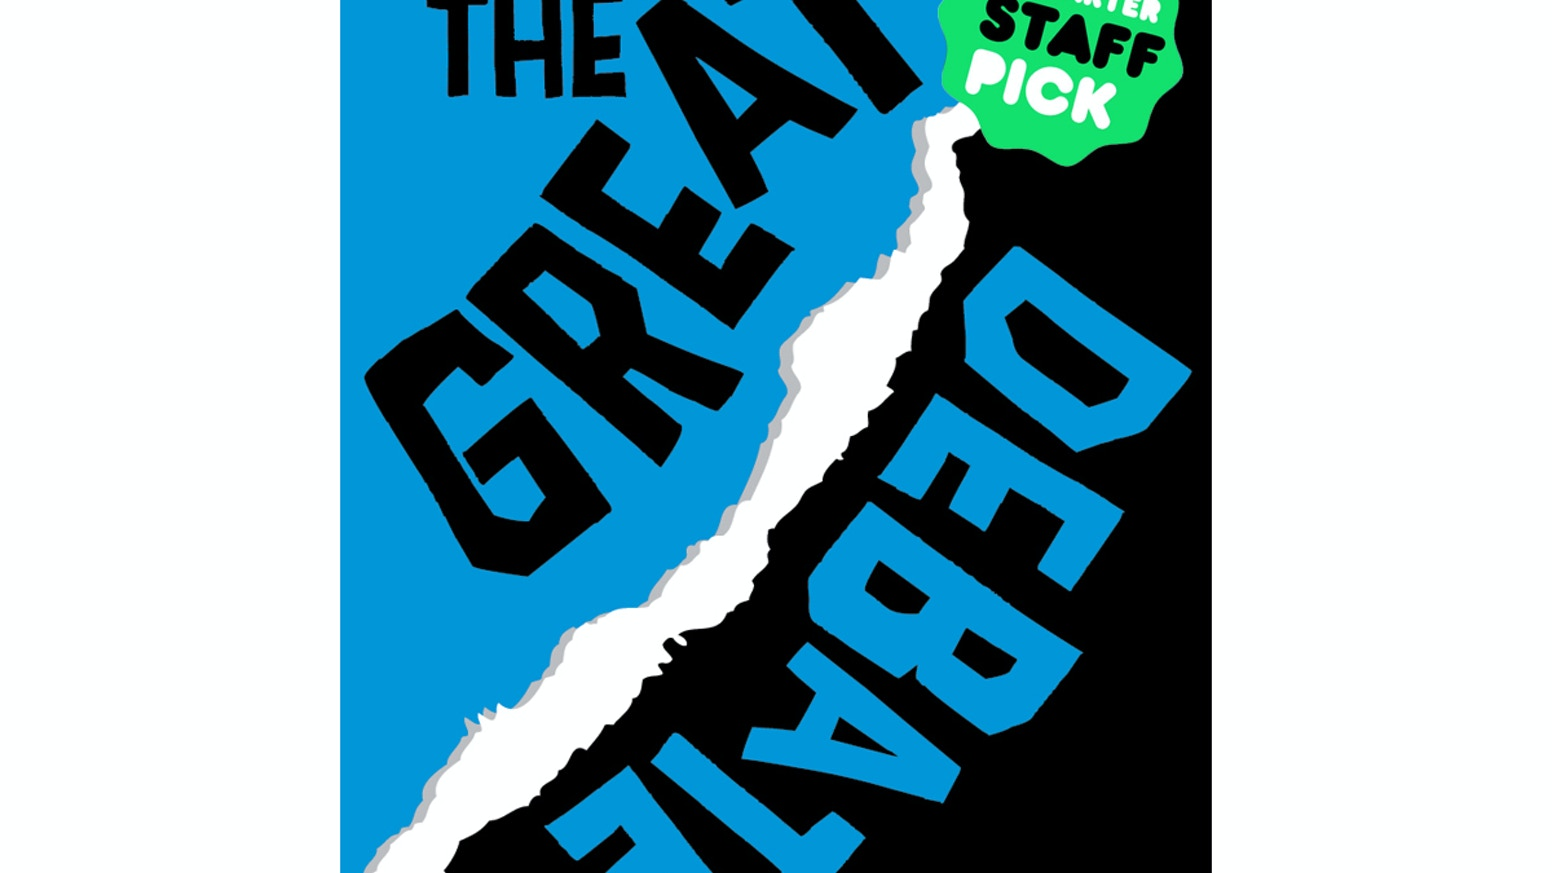 Find your opponent, defend your position and sway the audience in order to win…The Great Debate!